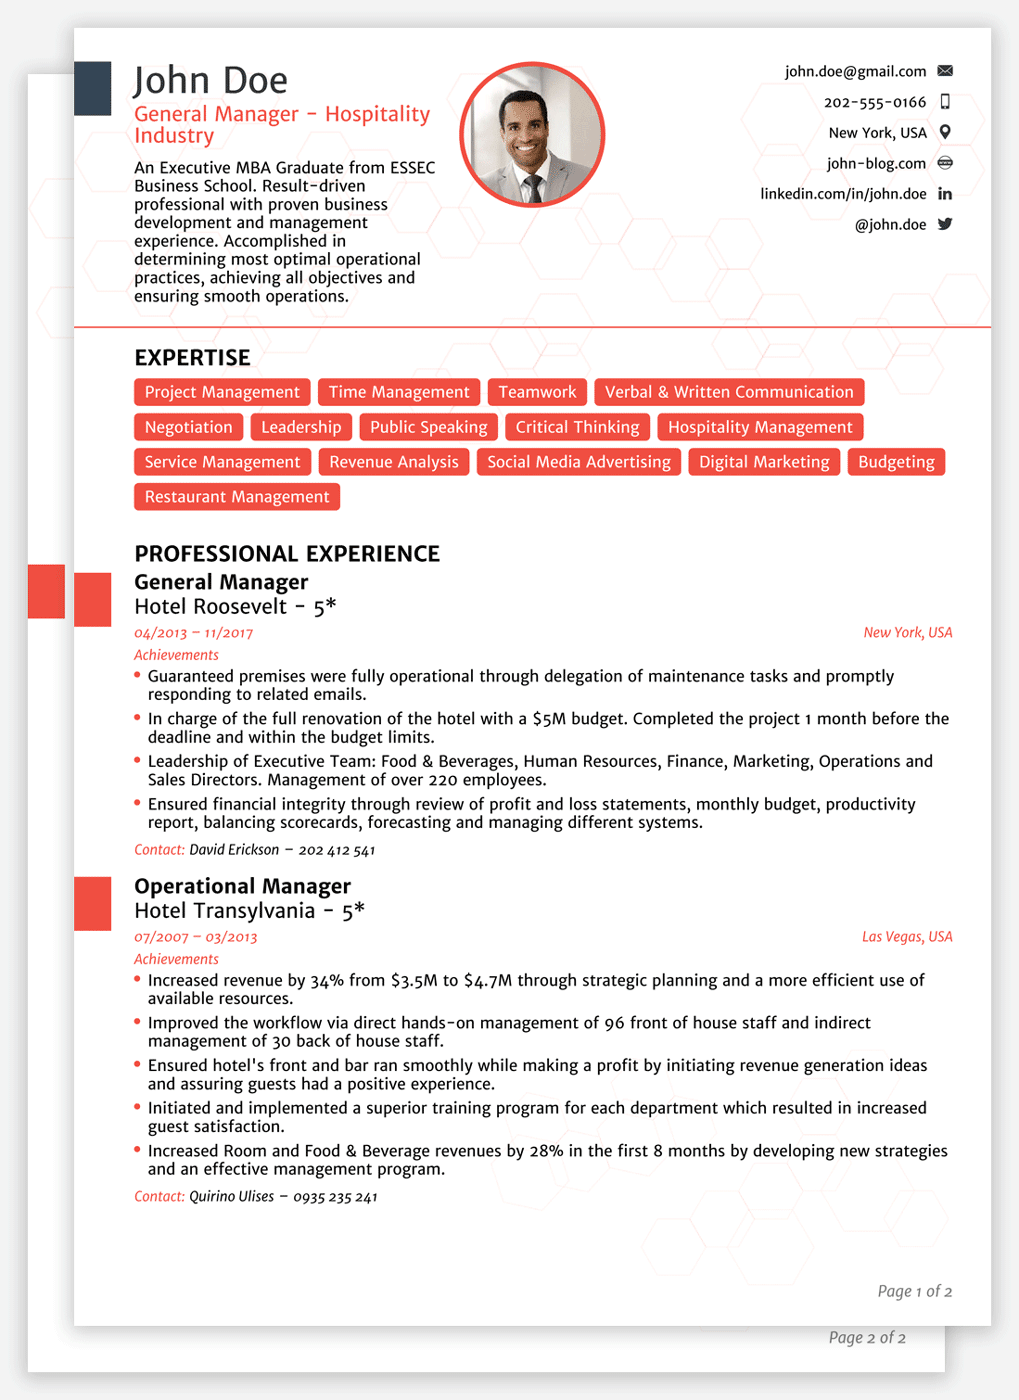 cover letter job application resume pinterest career advice